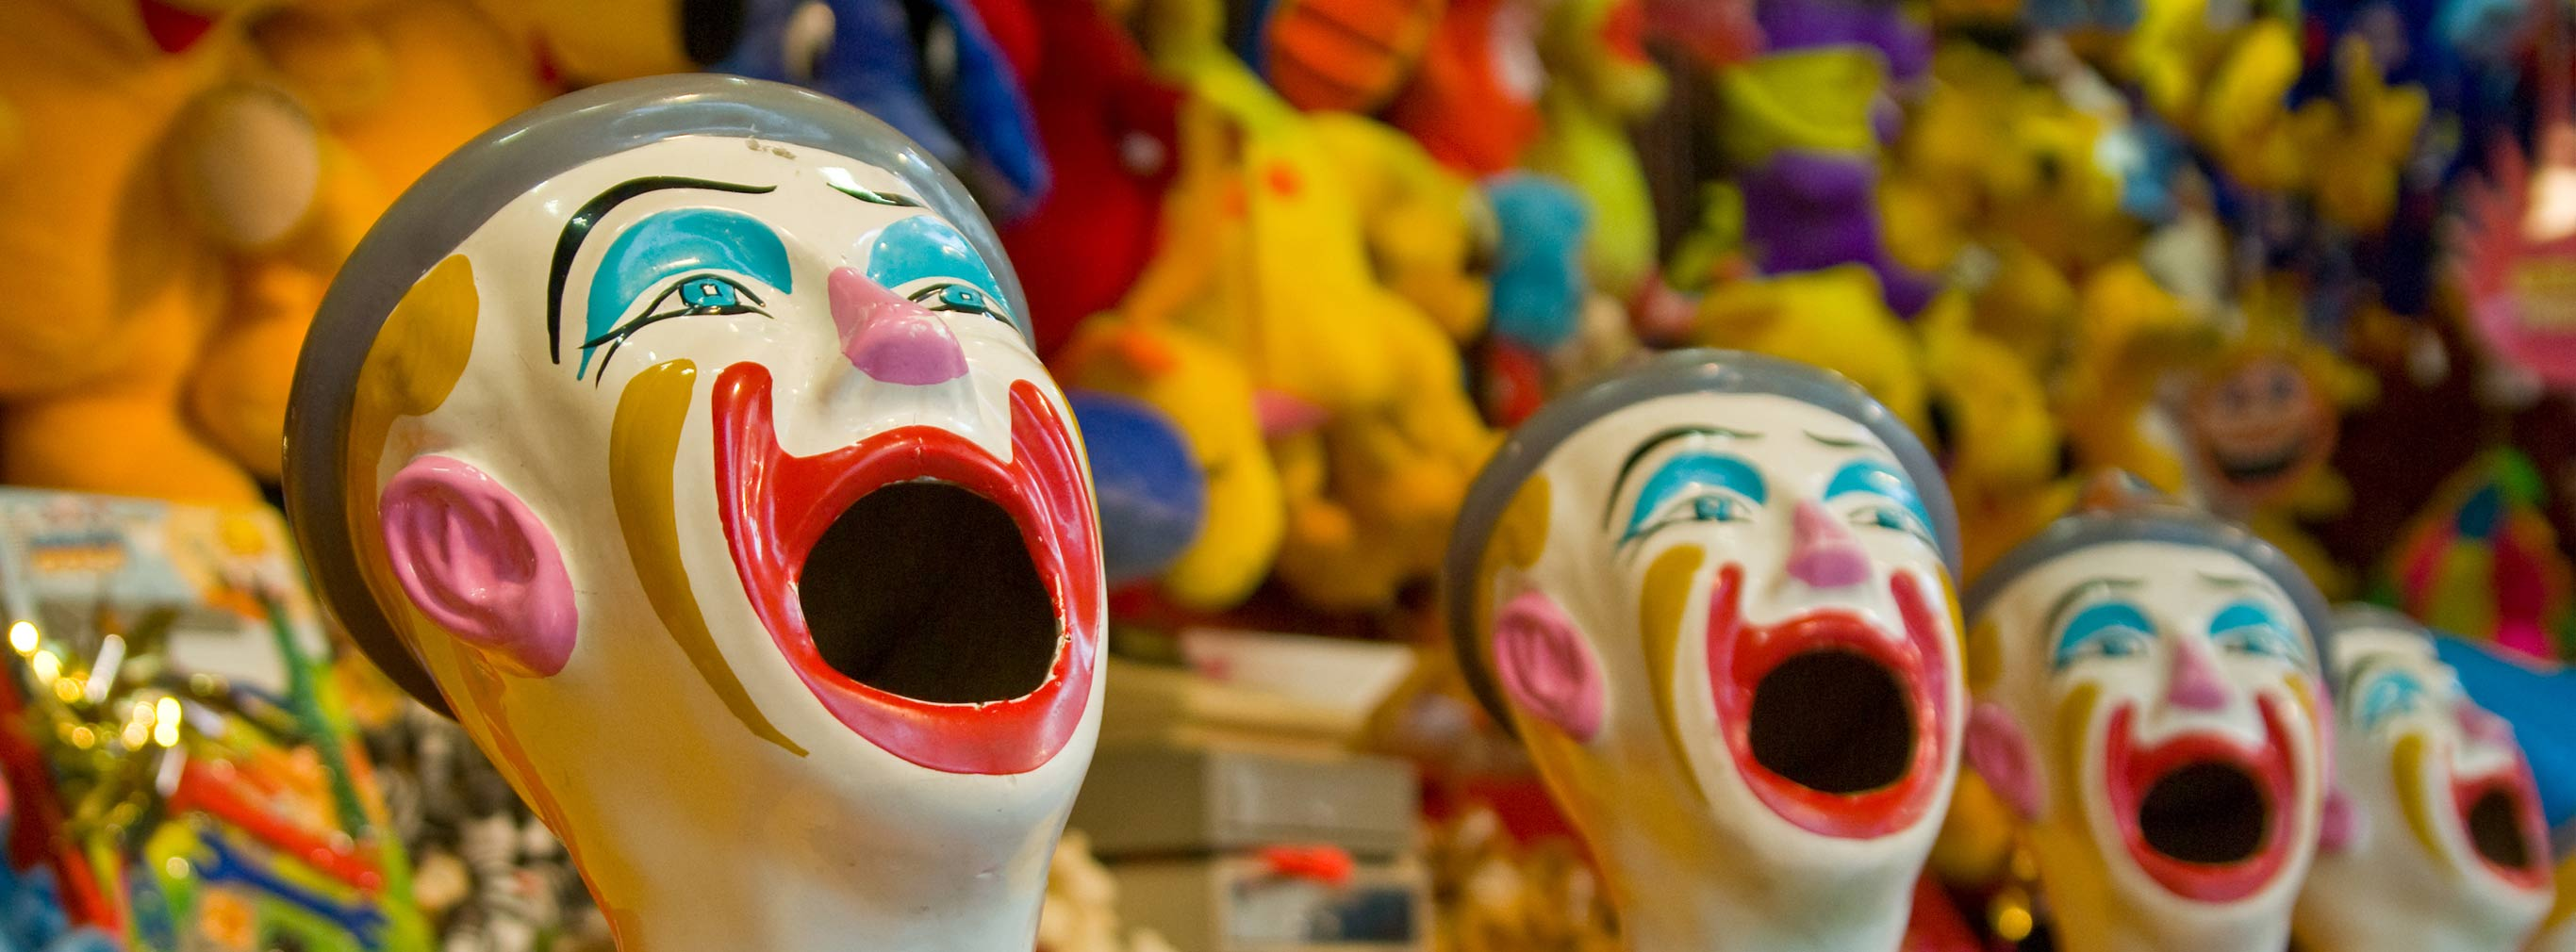 carnival amusements of s a laughing clowns